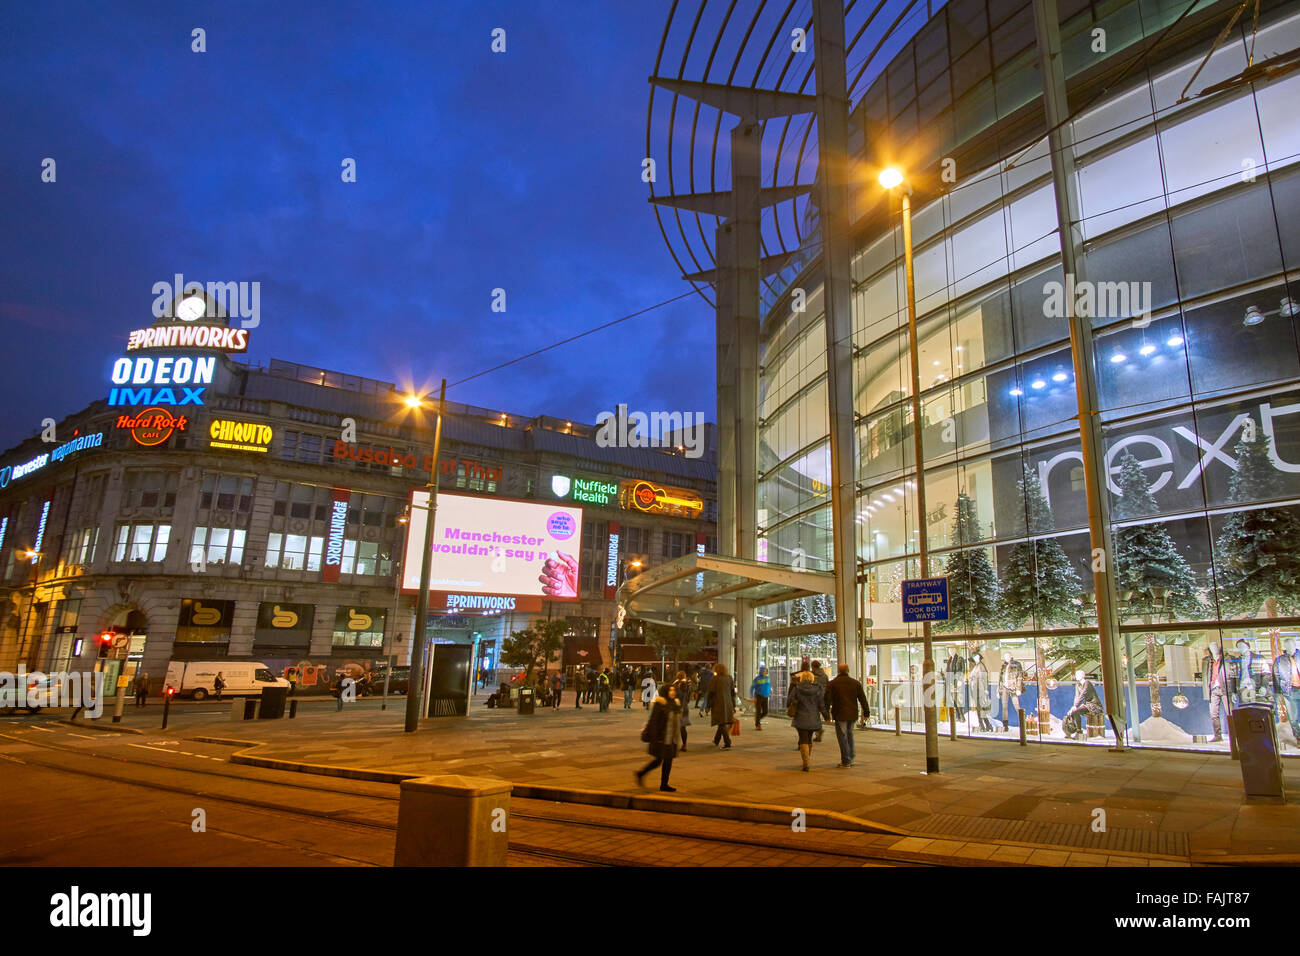 The Printworks and Arndale Centre on Corporation Street in Manchester city centre, England UK. - Stock Image